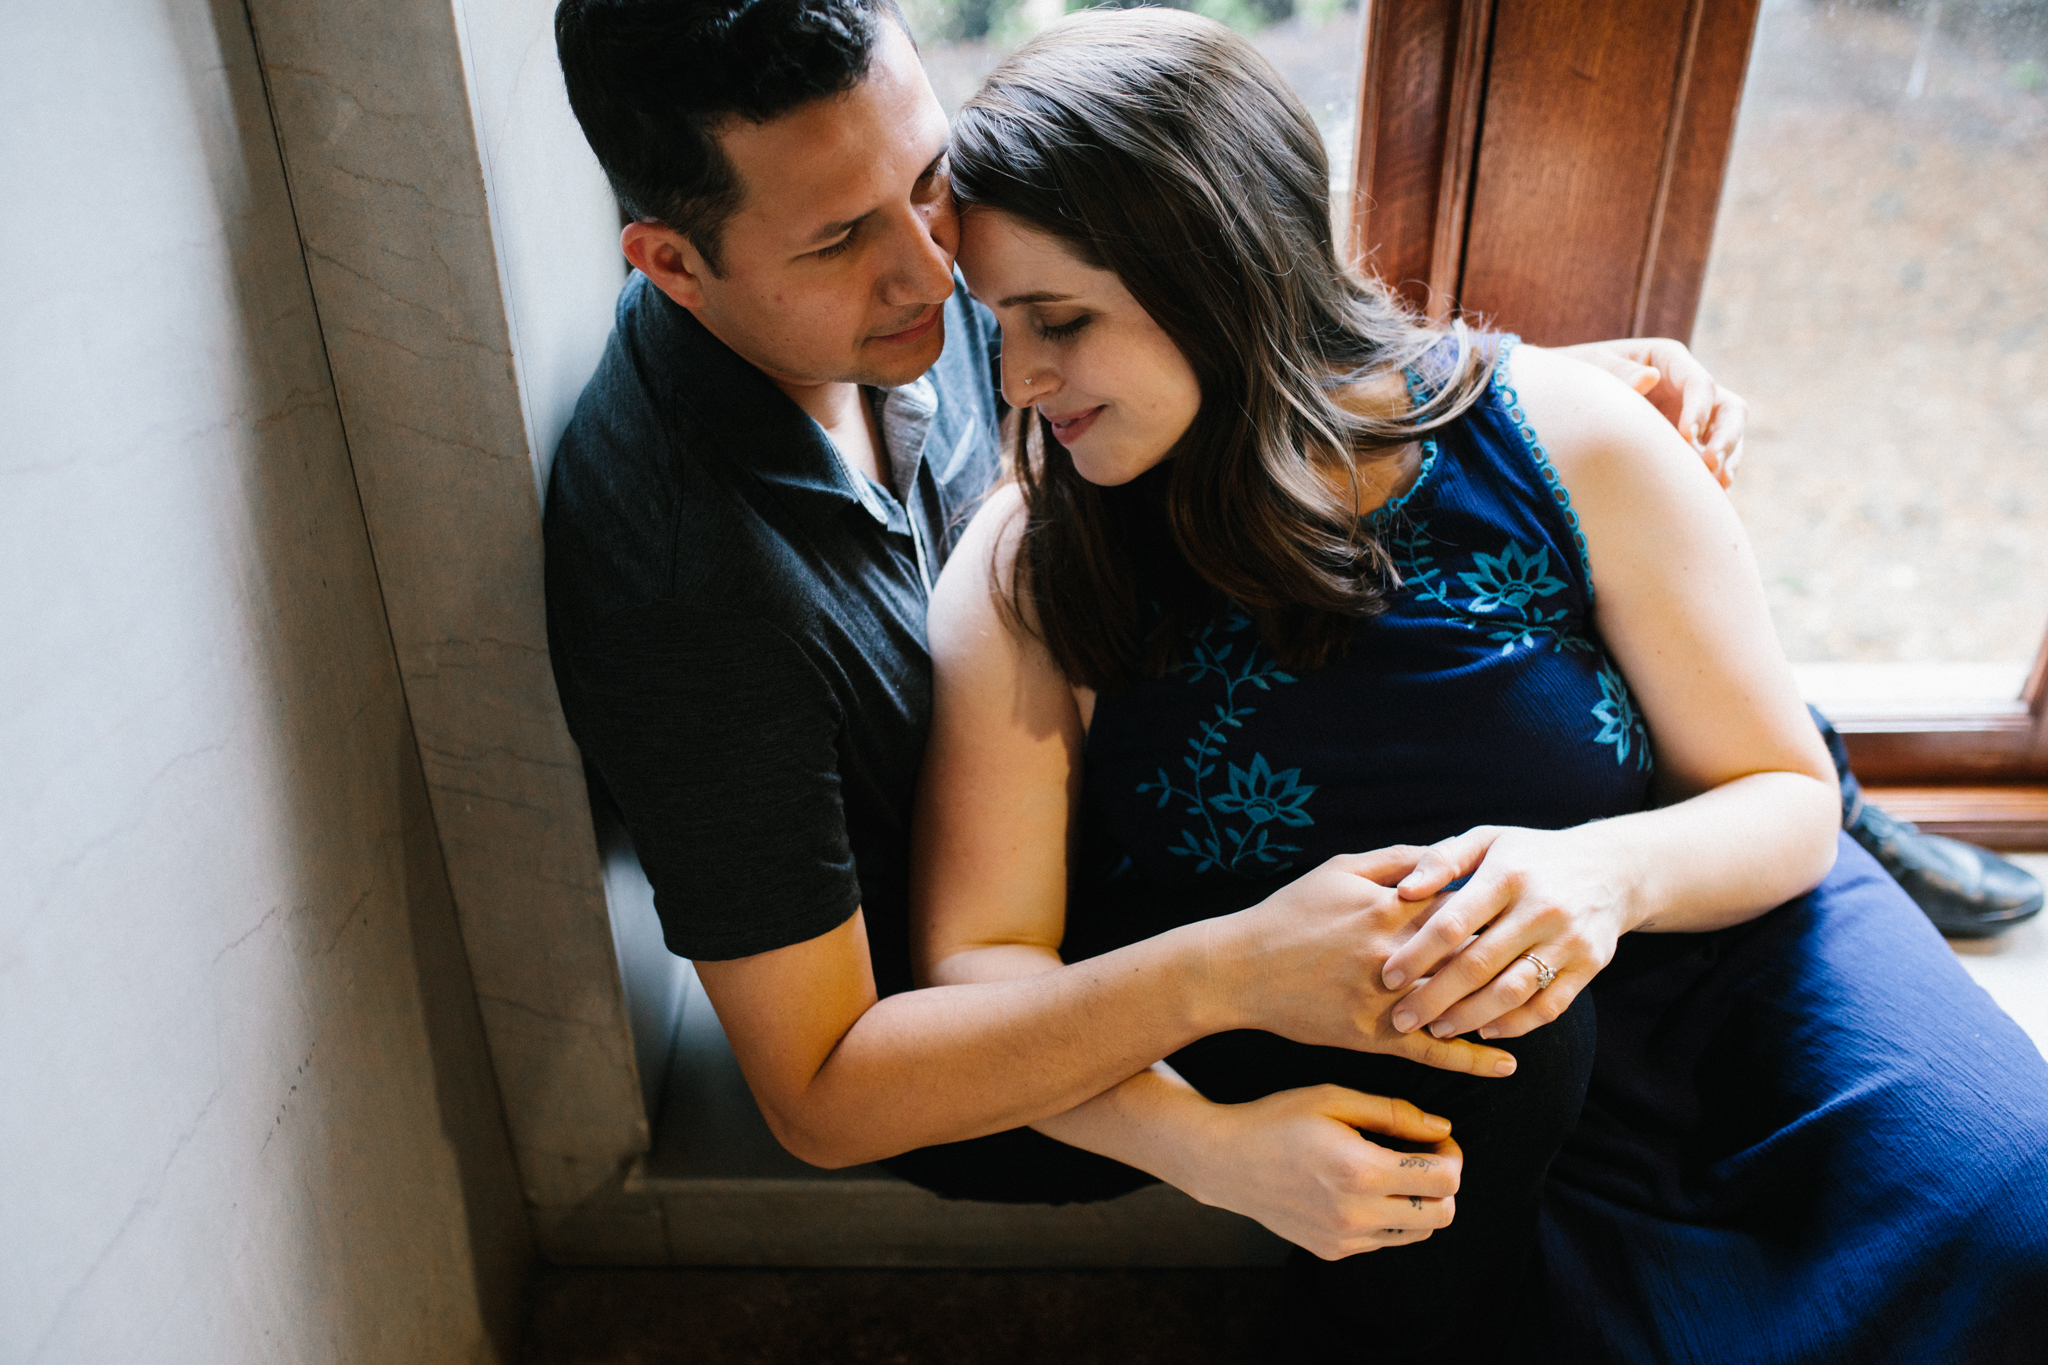 rachel_alex_richmond_engagement_session_mainstreetstation_rebeccaburtphotography-3.jpg